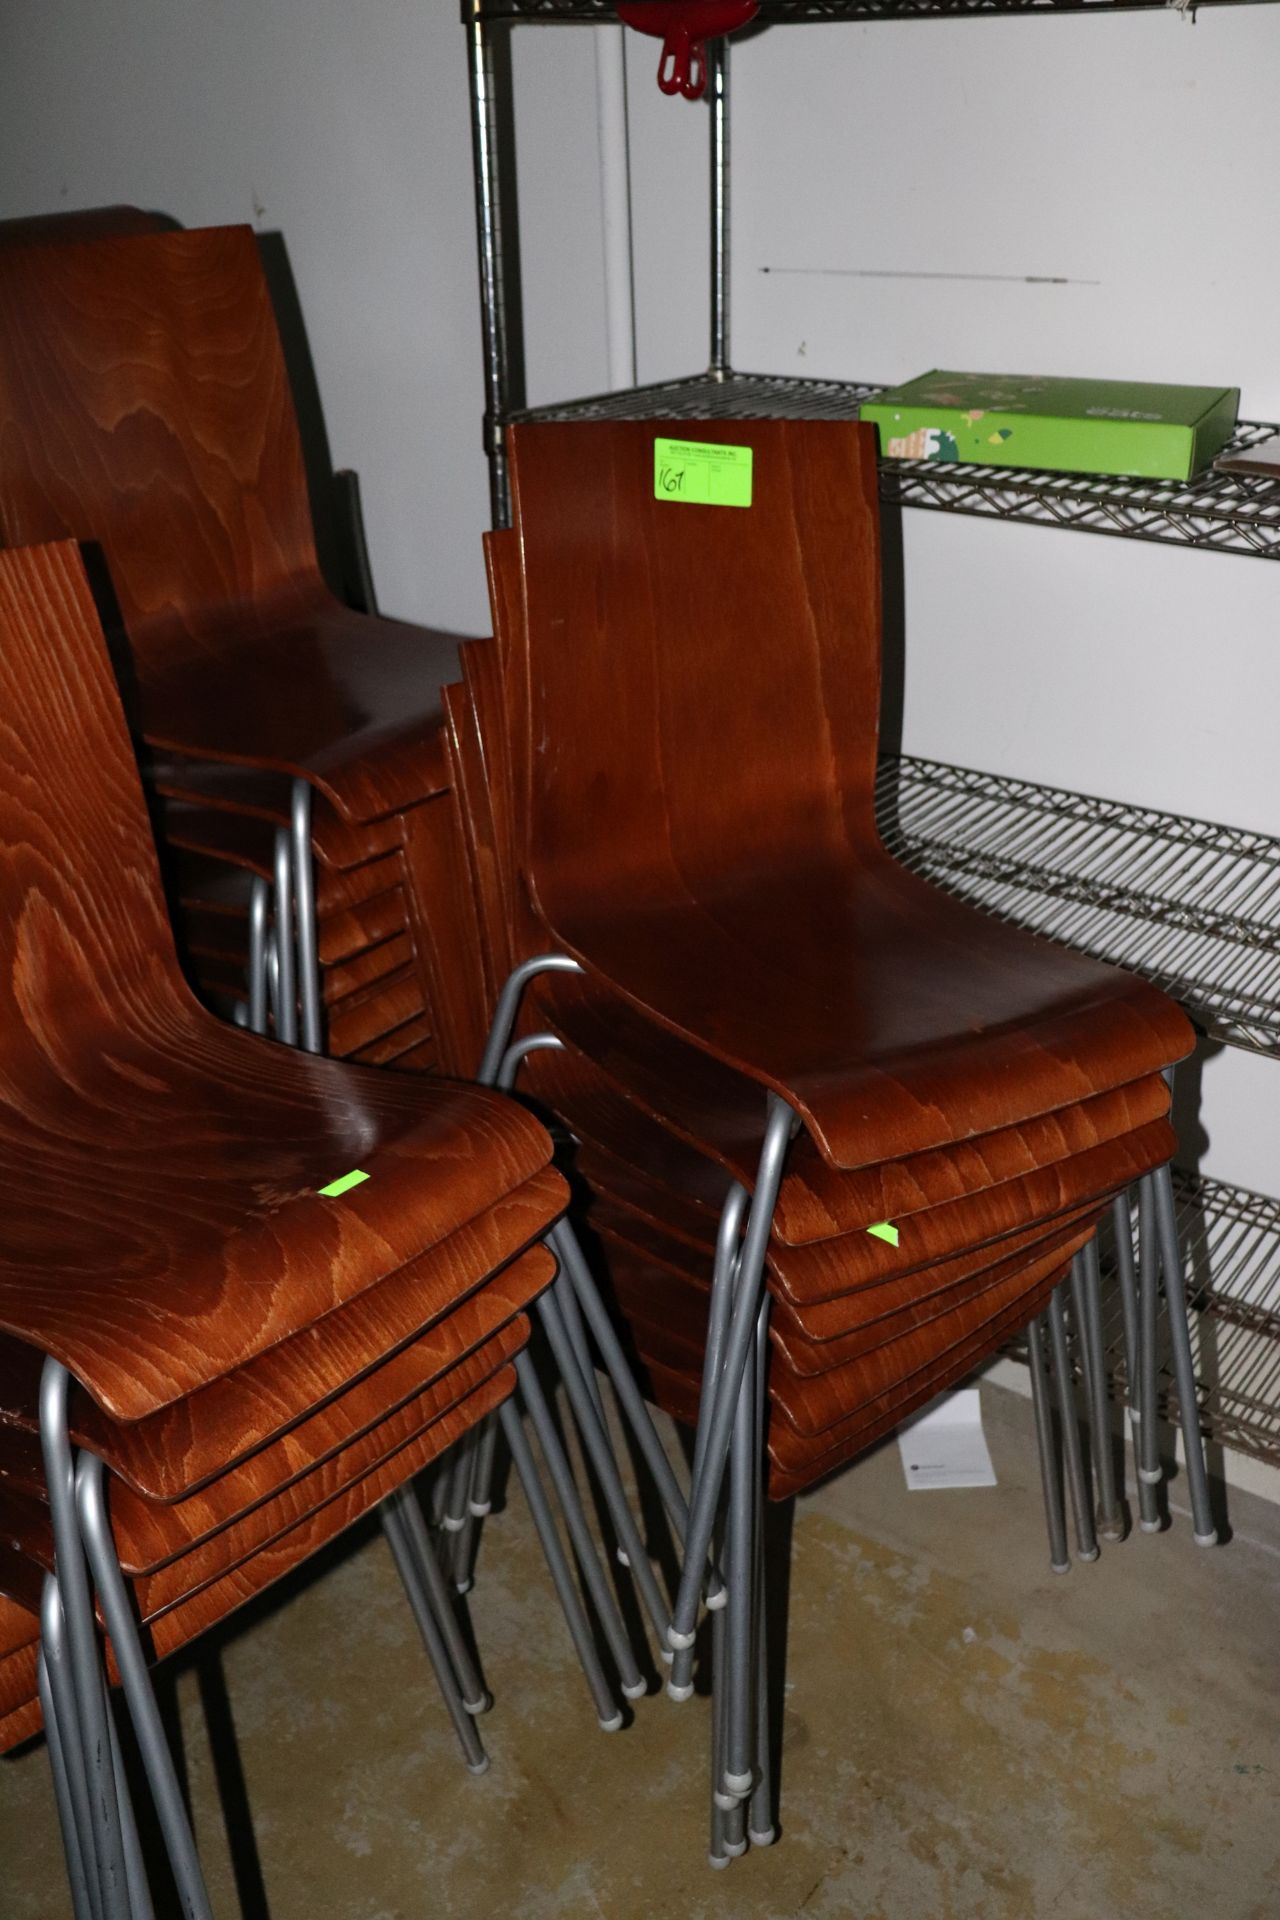 Lot 169 - Choice of 8 Chairs, First come first pick